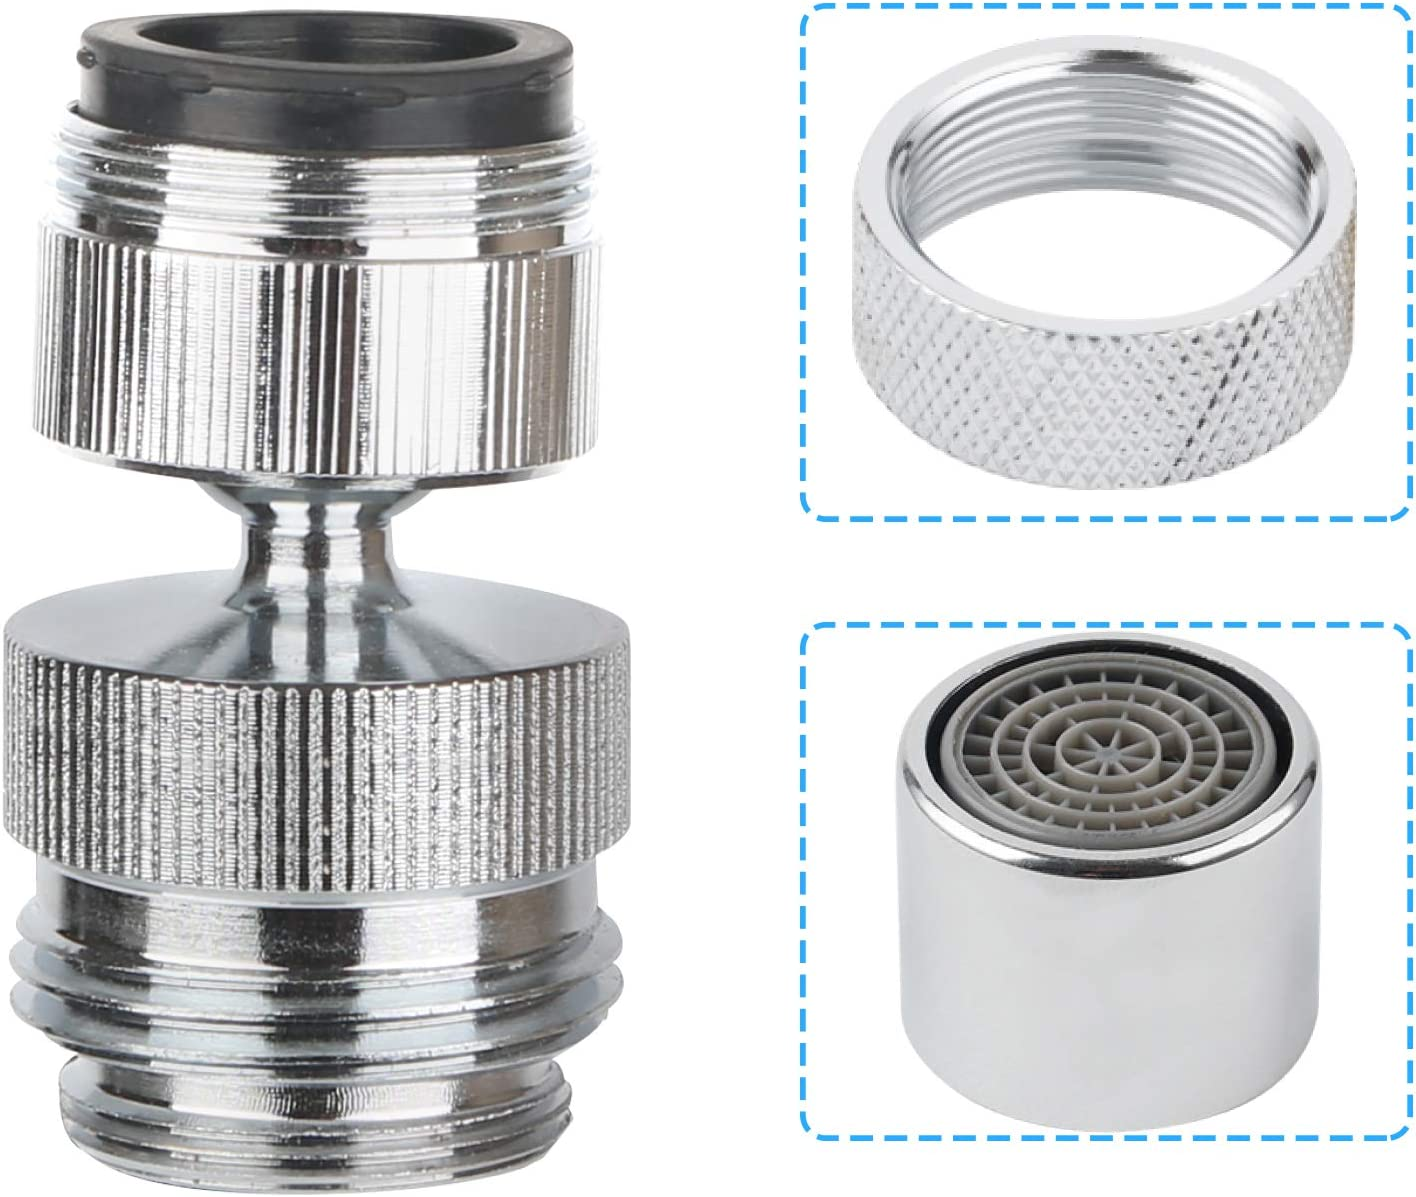 Faucet Adapter to Garden Hose, Kitchen Sink, Bathroom Sink Faucet Aerator, Kitchen Faucet, 360-degree Swivel Garden Hose Aerator Adapter, 15/16 Inch-27UNS Male Faucet Aerator- Chrome Finished